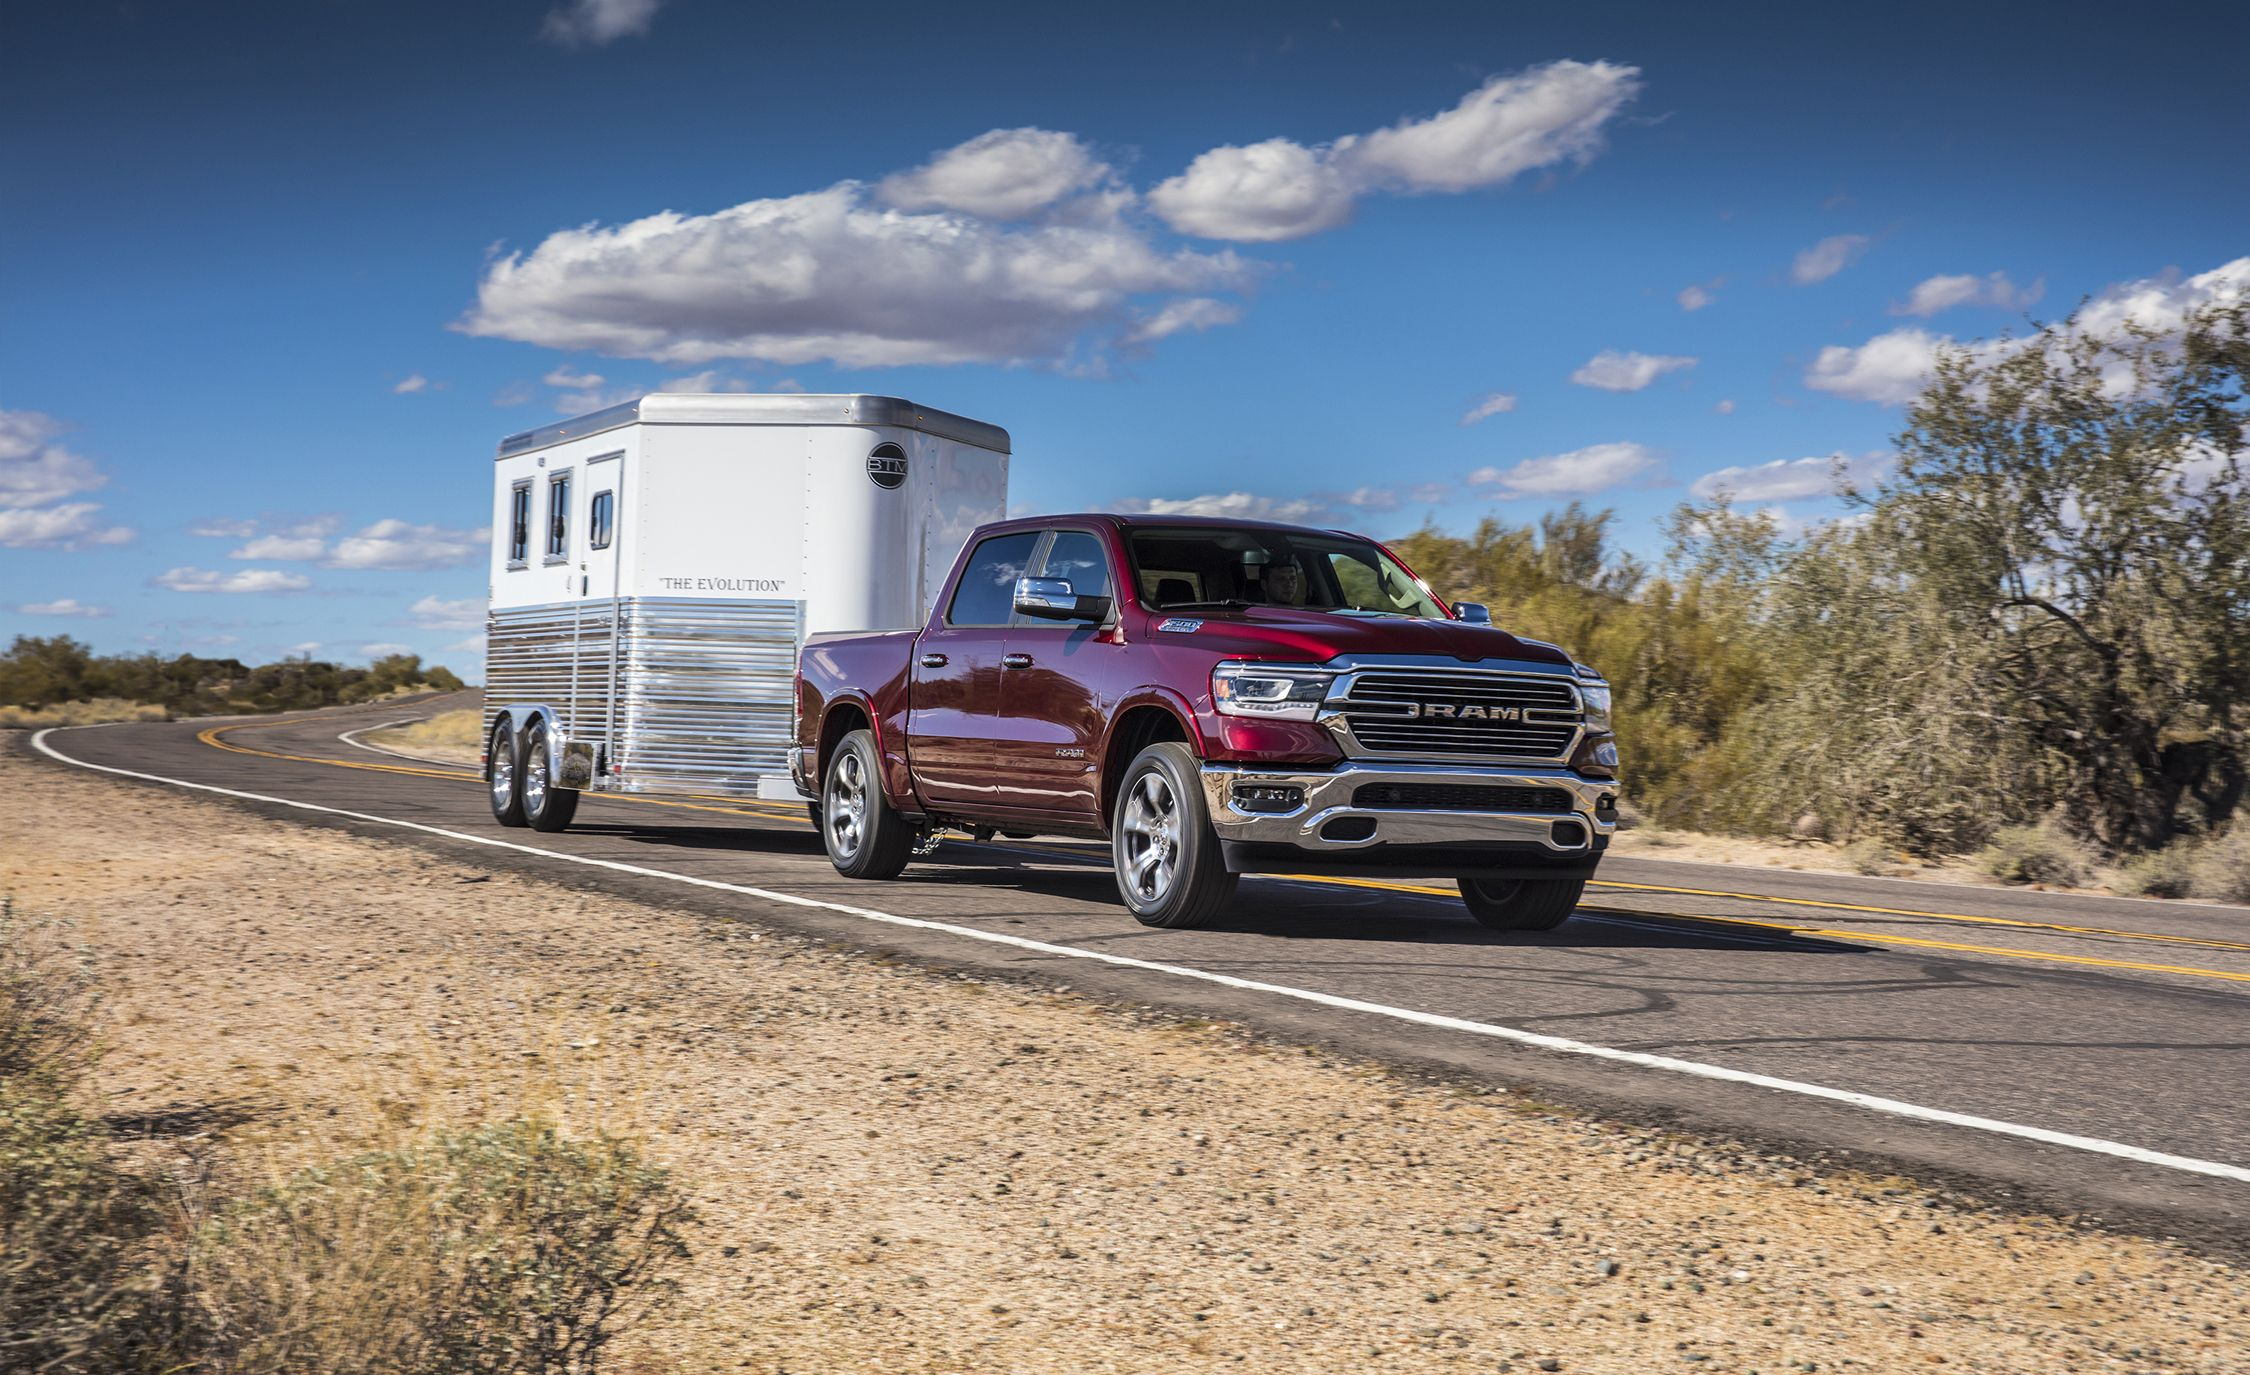 ram 1500 reviews ram 1500 price photos and specs car and driver. Black Bedroom Furniture Sets. Home Design Ideas